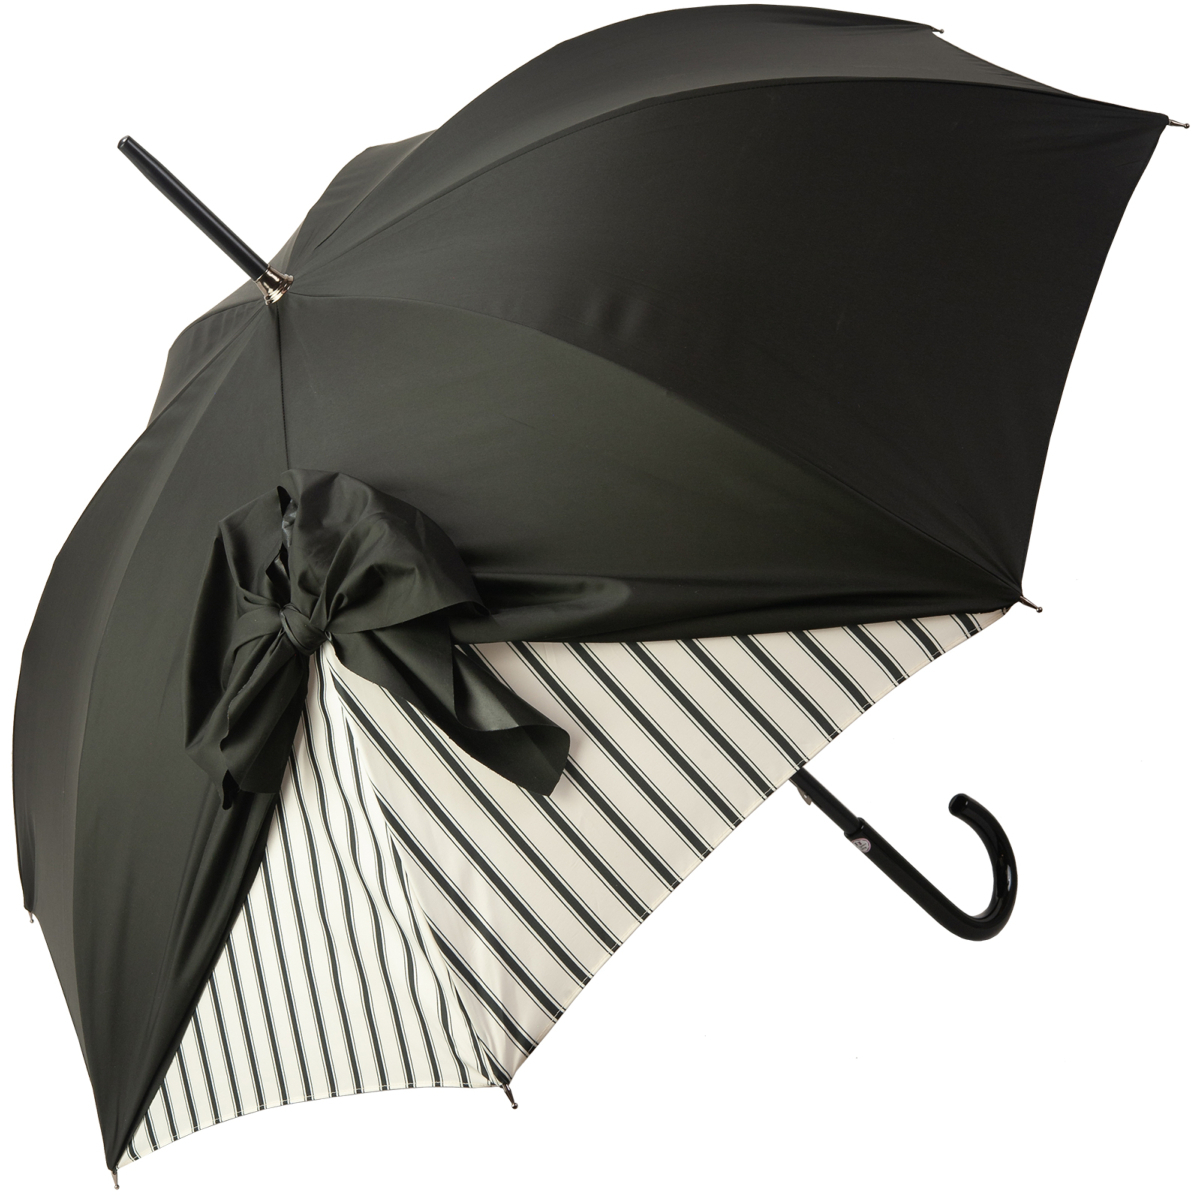 Widely Used Drape Umbrellas With Regard To Drape Bow Umbrella With Black Stripe On Creamchantal Thomass (View 20 of 20)